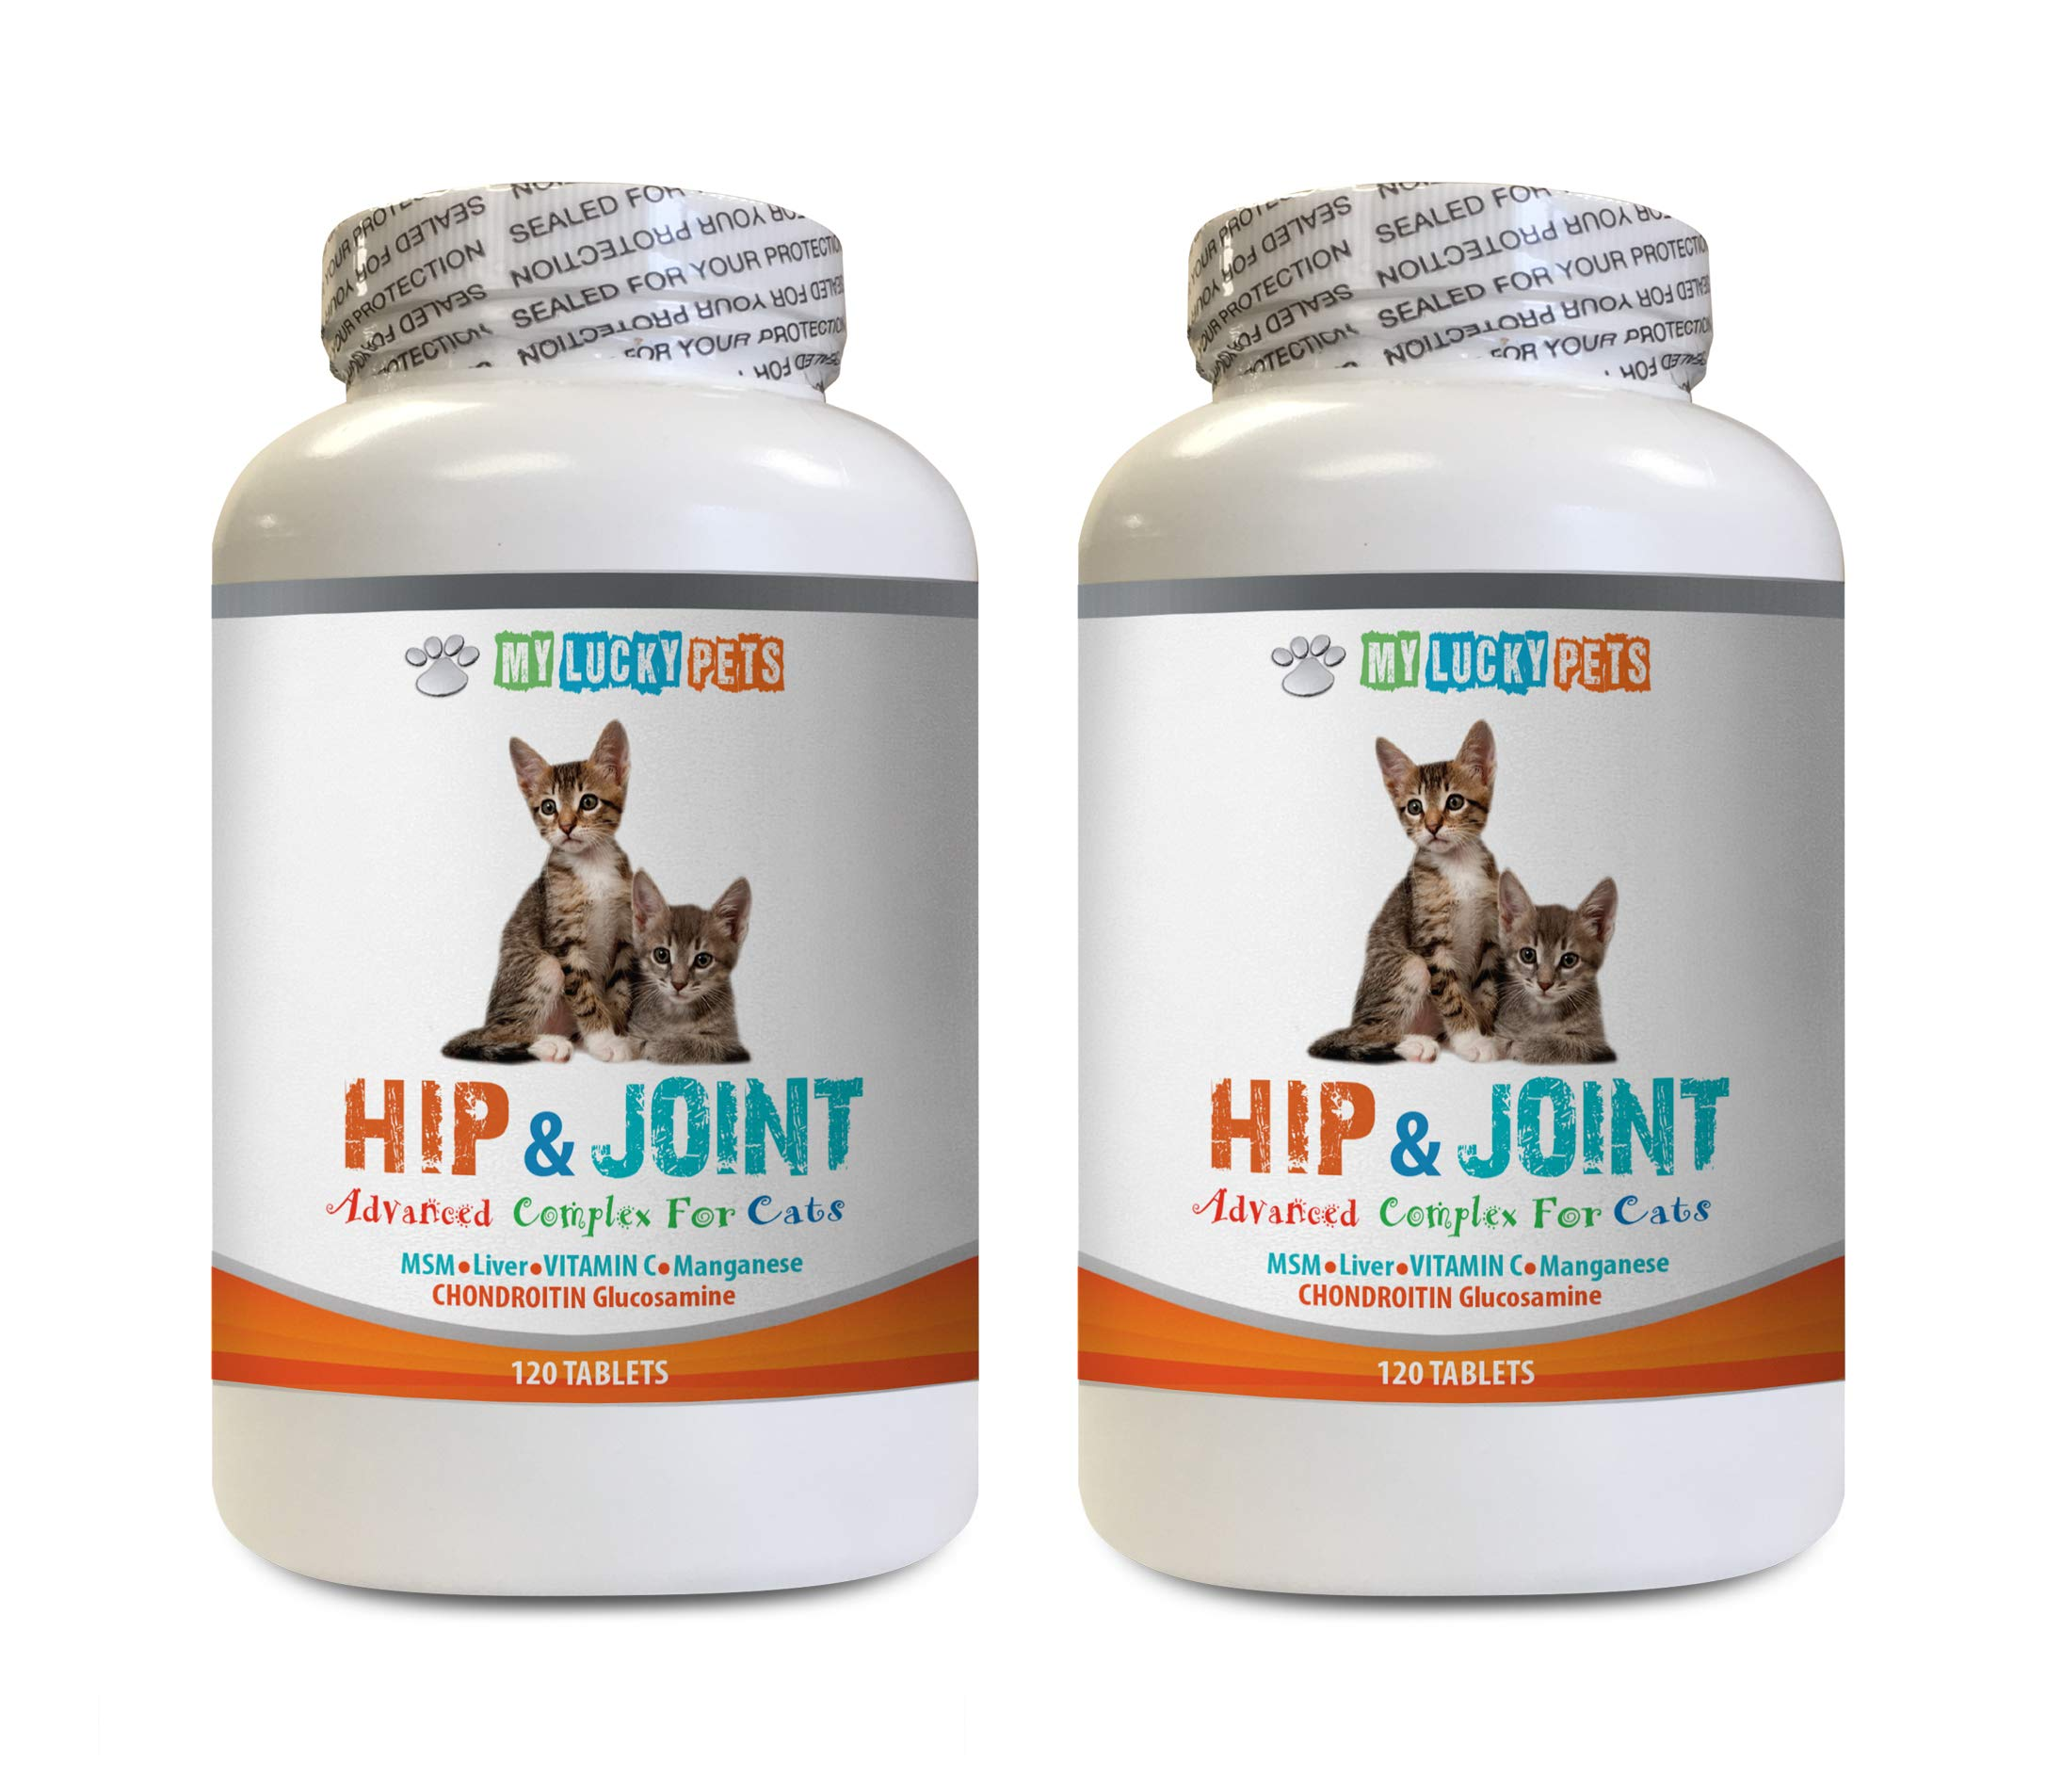 cat mobility aid - CAT HIP AND JOINT COMPLEX - INCREASE MOBILITY AND REDUCE JOINT STIFFNESS - IMMUNE SUPPORT - VET APPROVED - glucosamine chondroitin cat treats - 2 Bottles (240 Tabs) by MY LUCKY PETS LLC (Image #1)